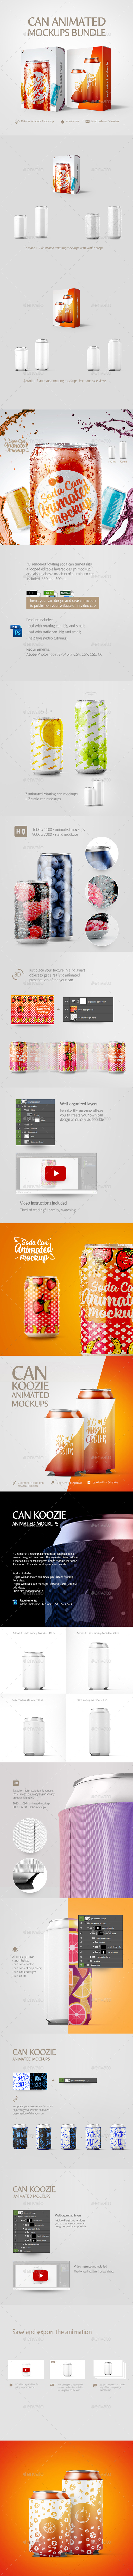 Can Animated Mockups Bundle - Food and Drink Packaging